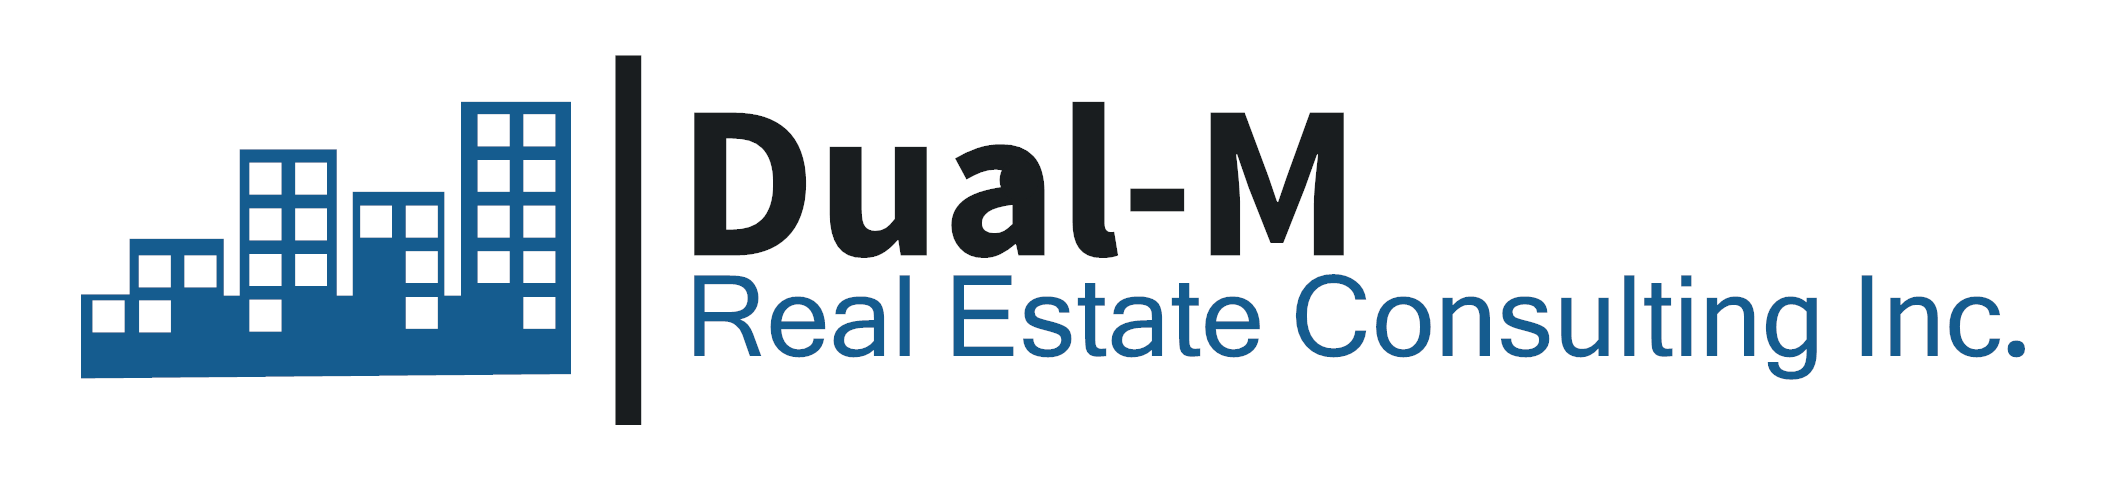 Specialized real estate services for end users, owners and developers